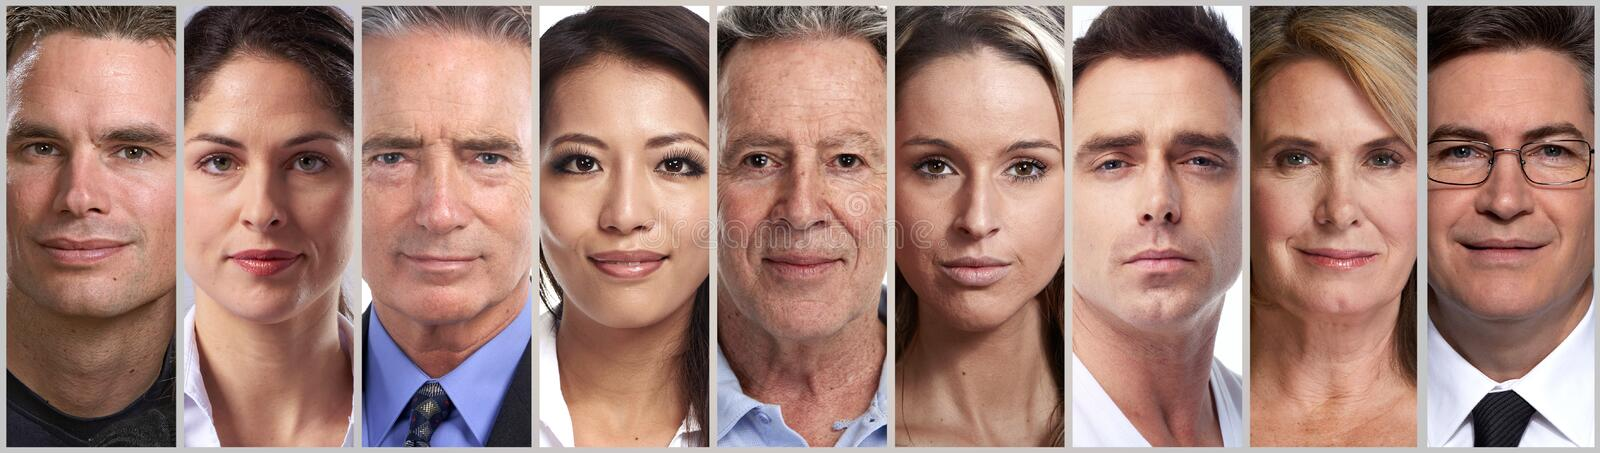 Calm people faces stock photos